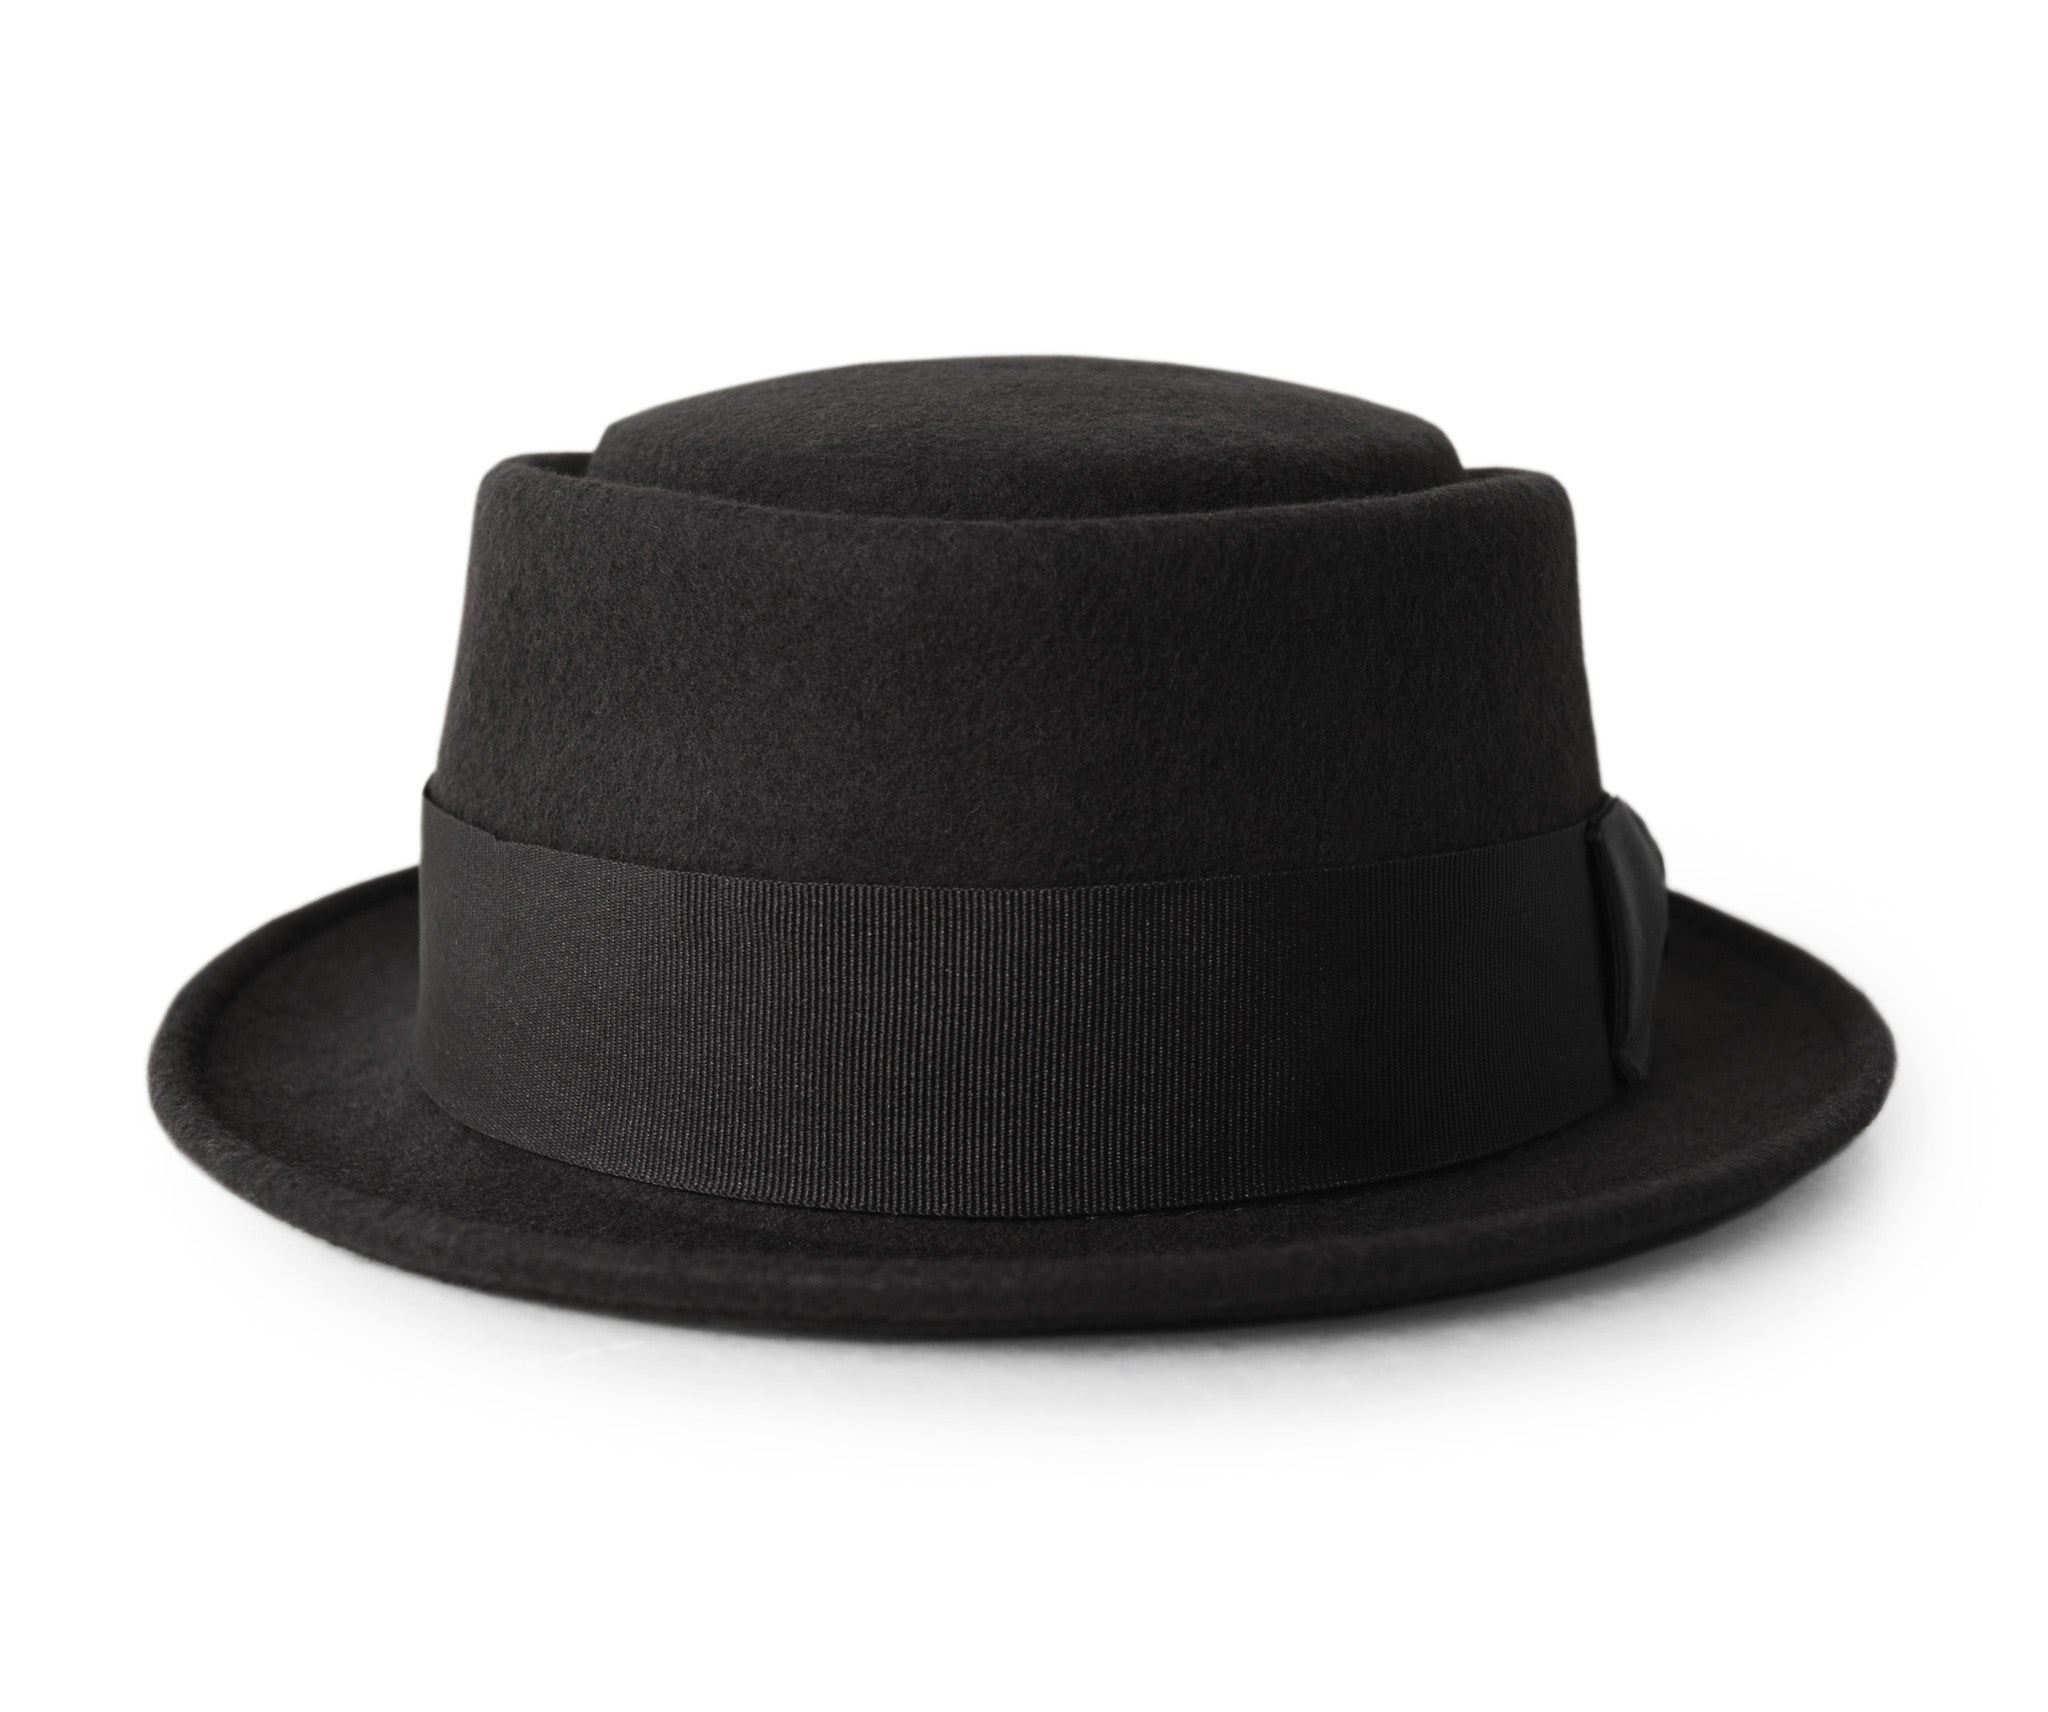 Black Pork Pie Hat for Men